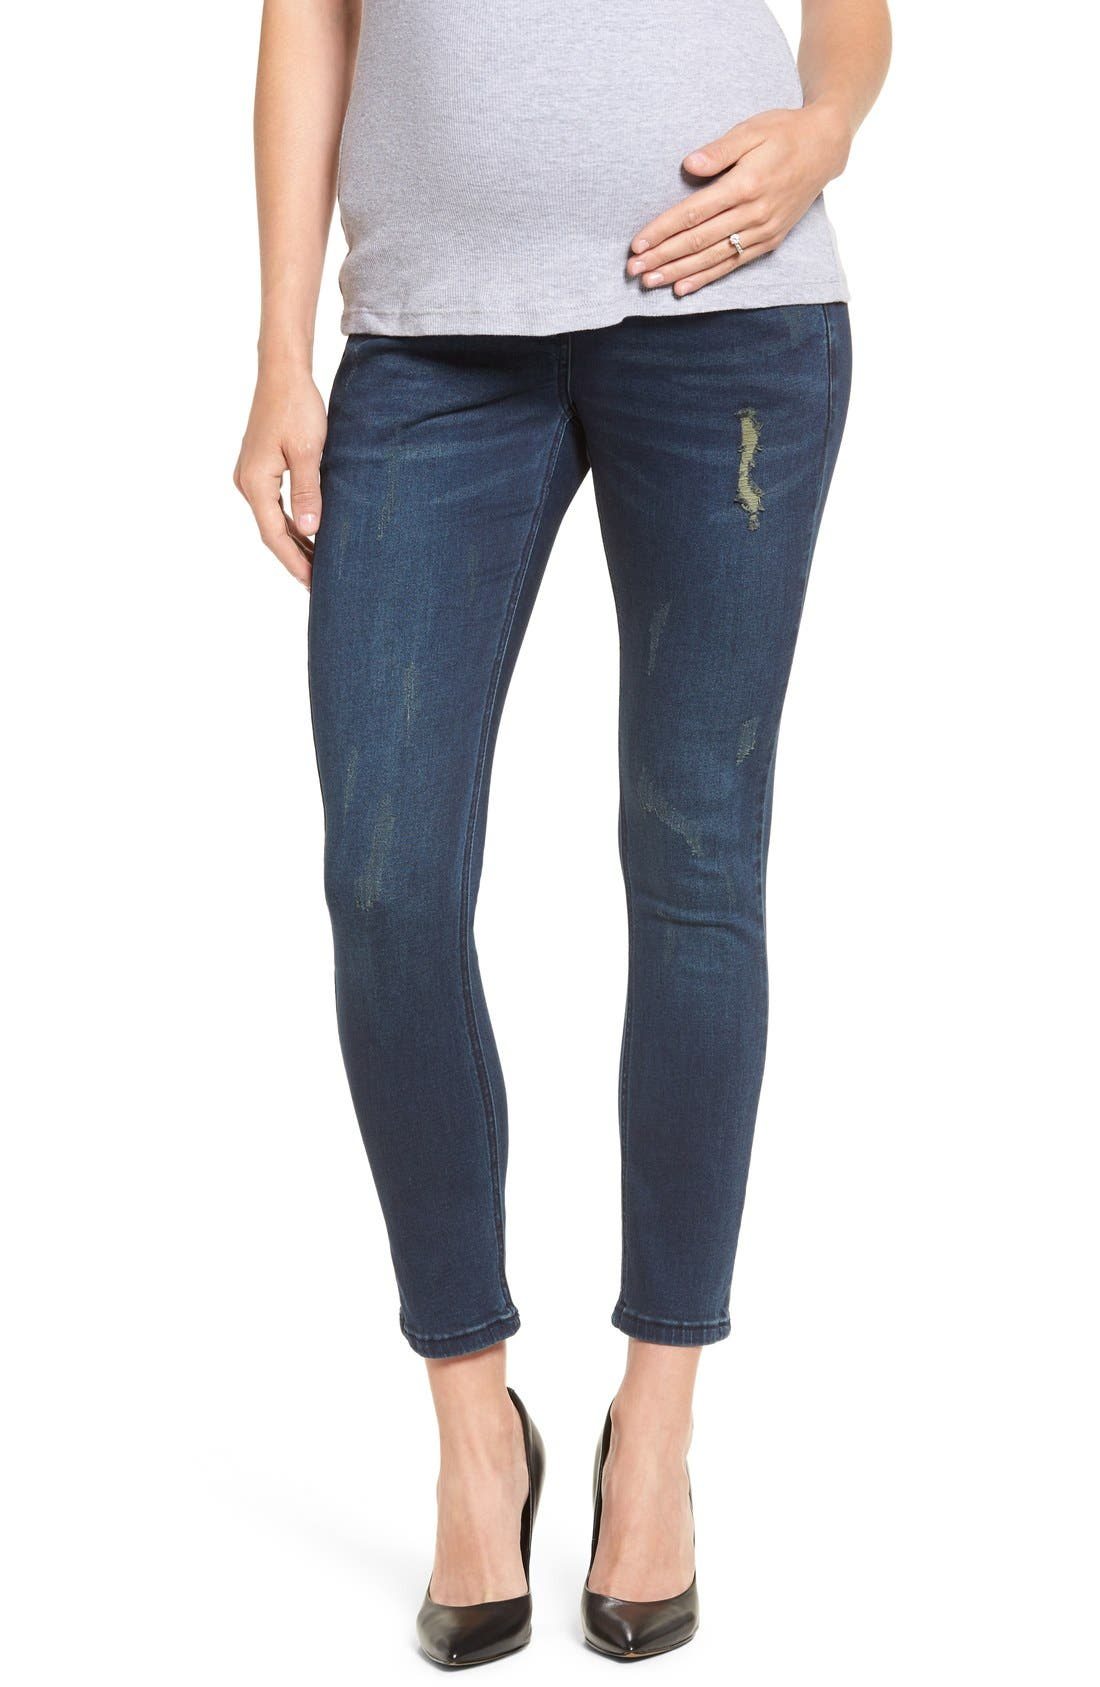 Distressed Skinny Maternity Jeans,                         Main,                         color, Classic Wash